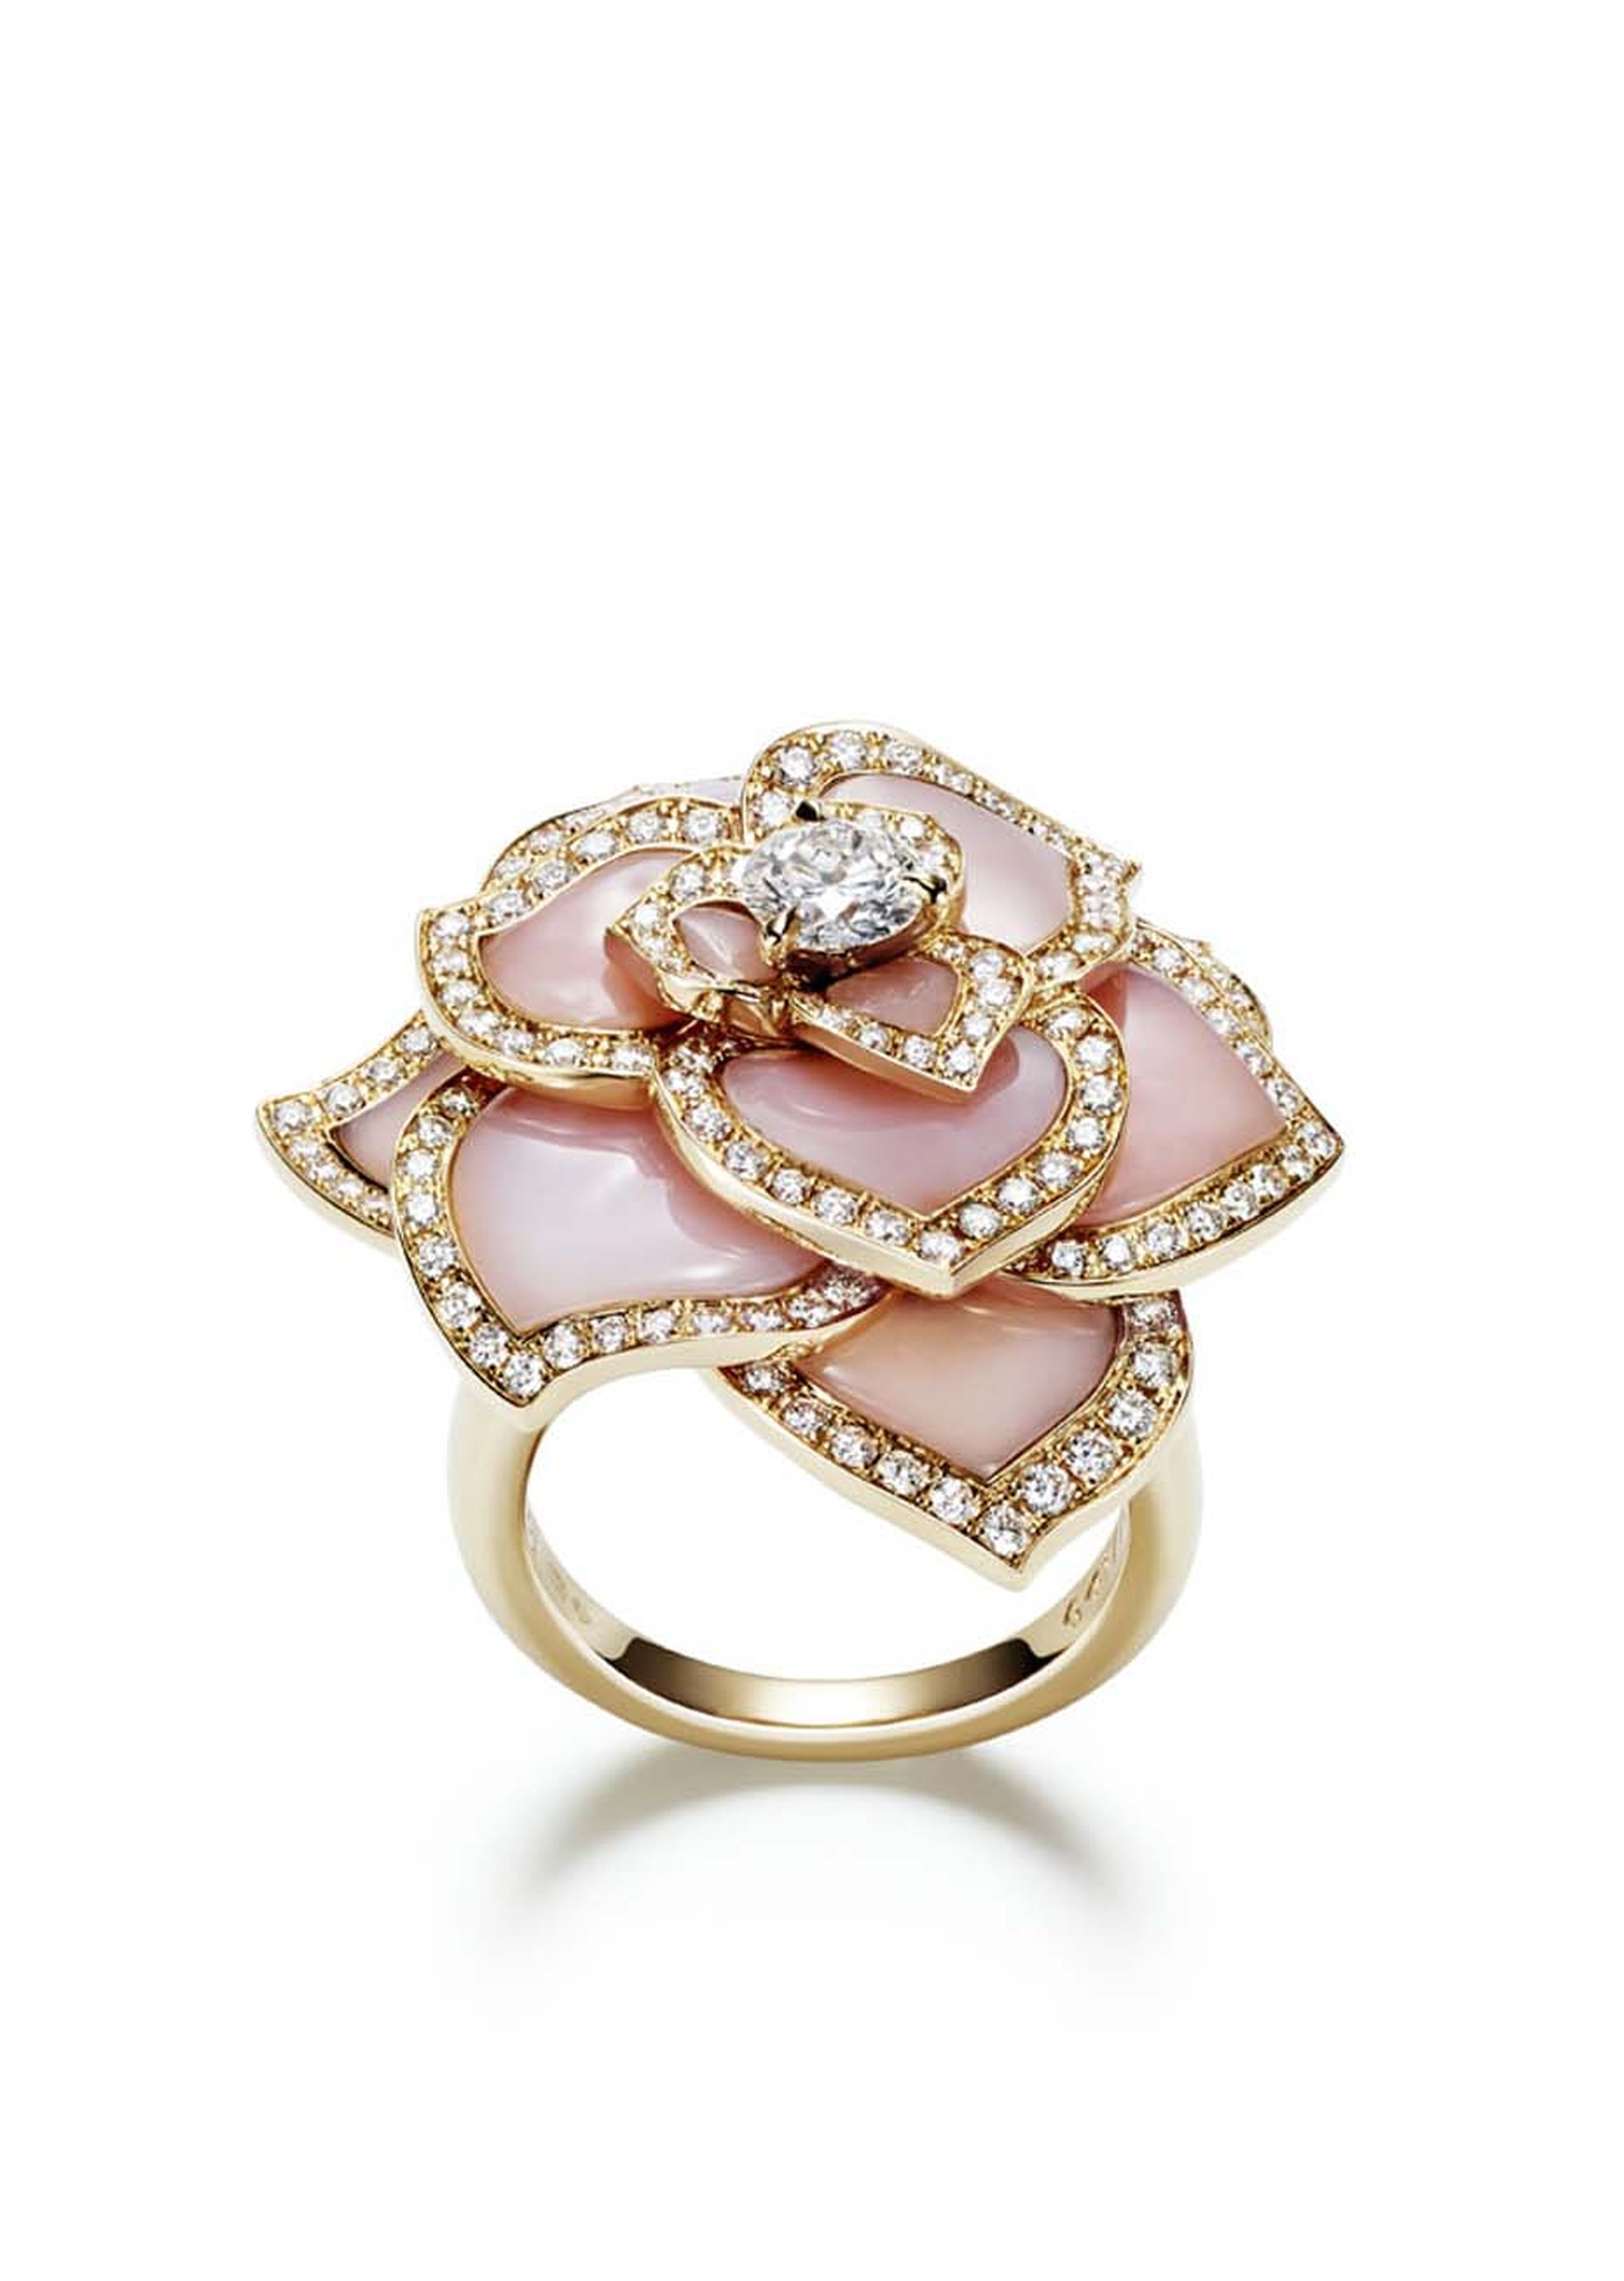 Piaget's pink gold Rose Passion ring features pink carved opal petals set with pavé diamonds and a central brilliant-cut diamond